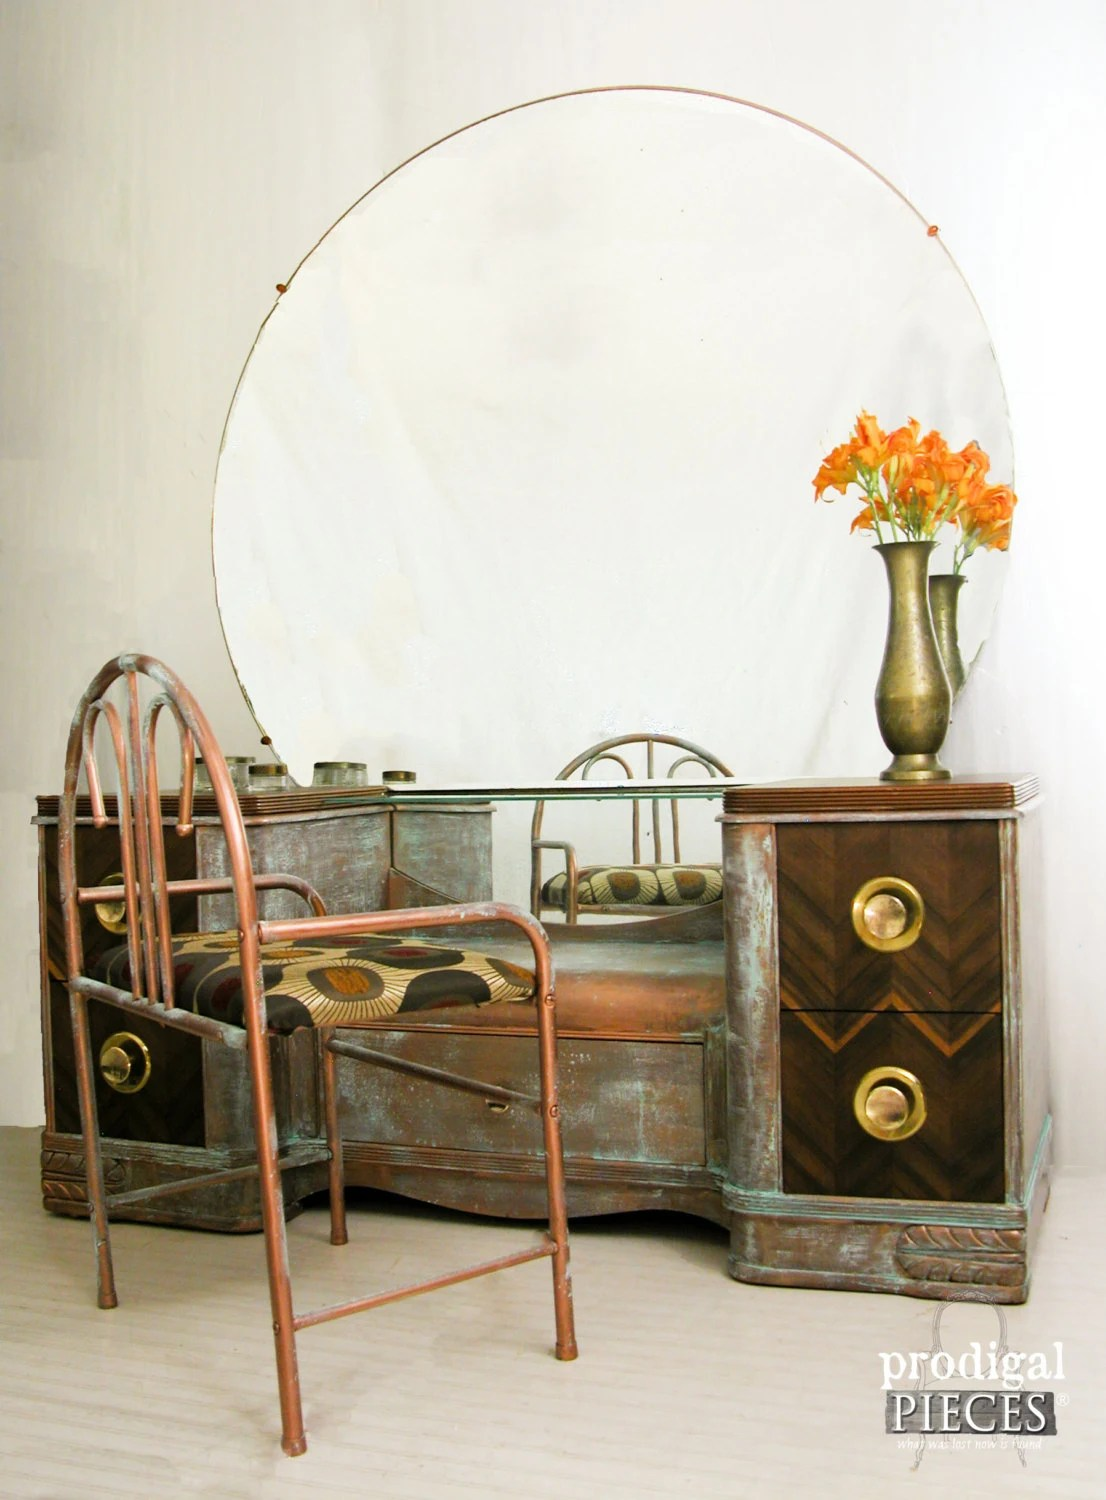 Antique Art Deco Dressing Table Vanity with Chair, Original Brass Pulls, & Extra Large Mirror ...